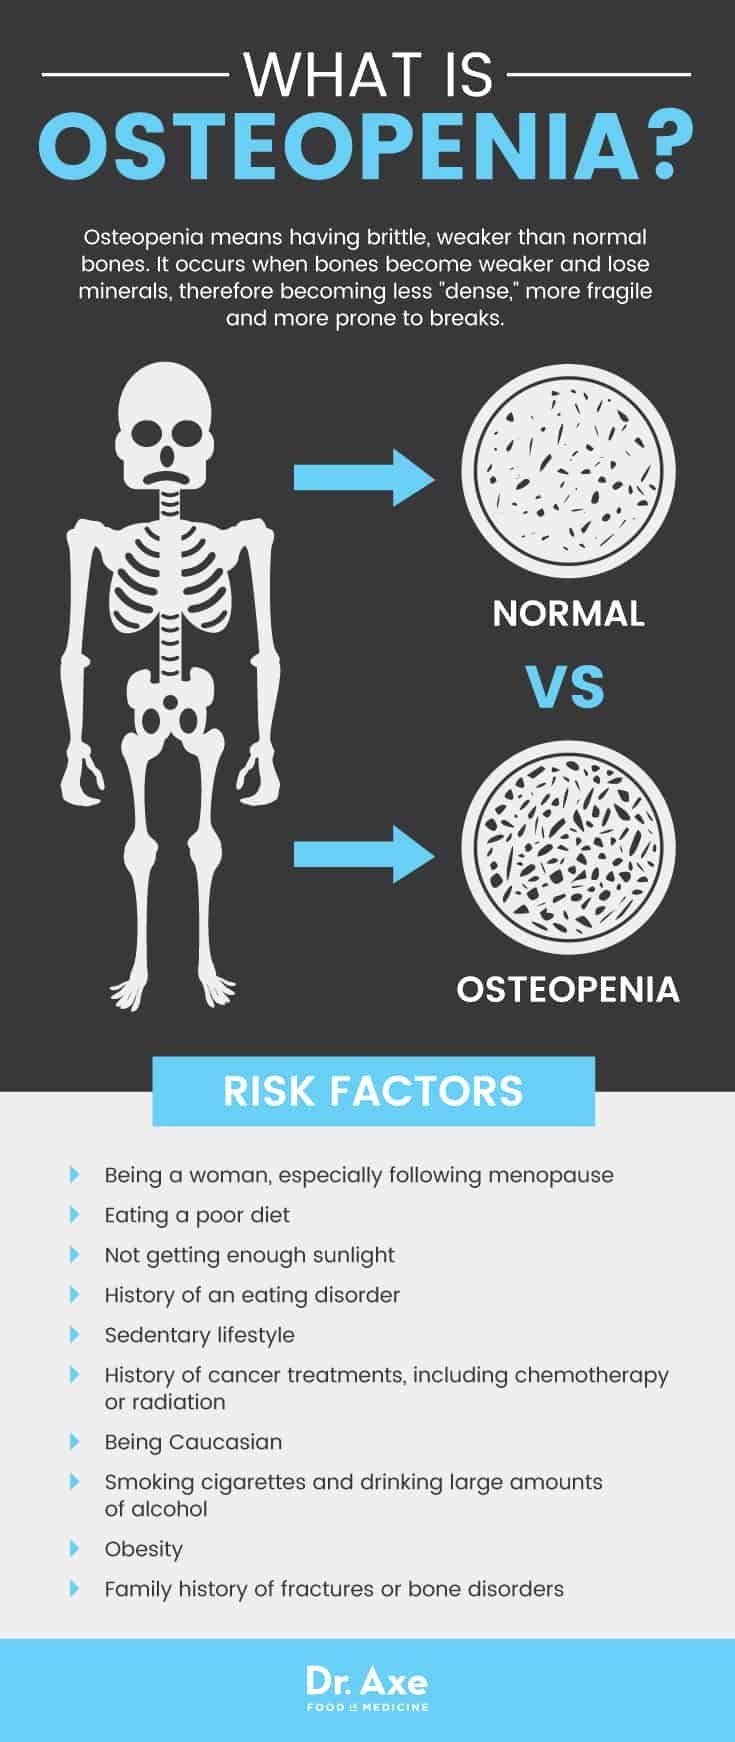 30+ Can osteoporosis lead to bone cancer ideas